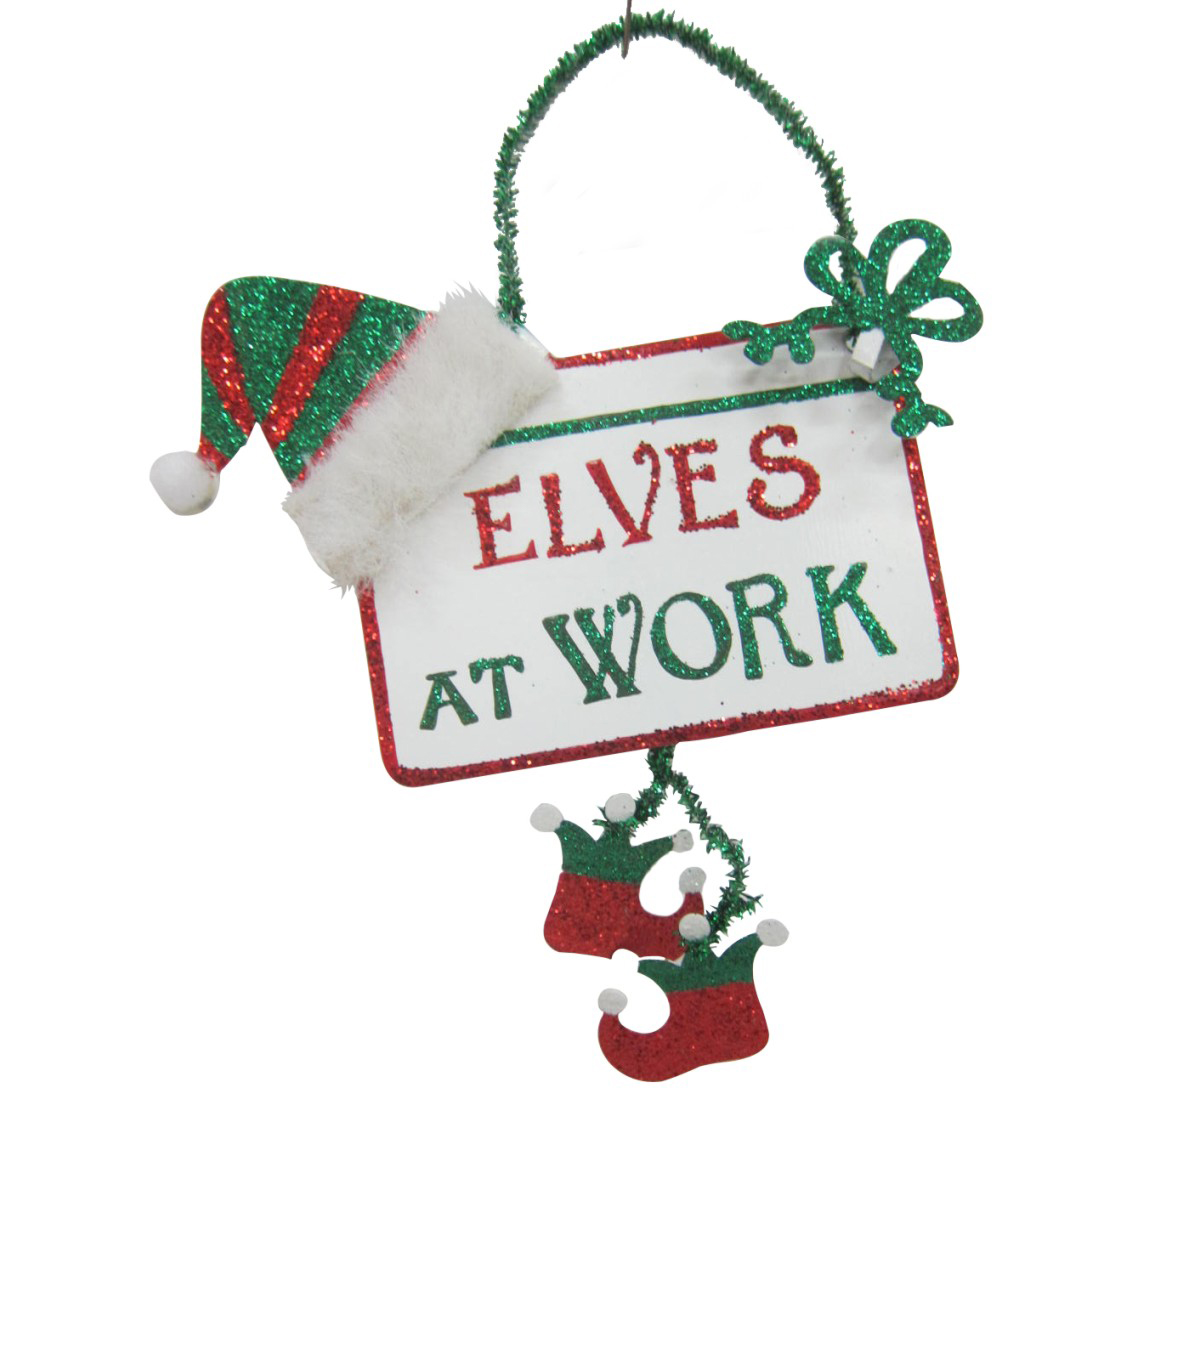 Maker's Holiday Christmas Whimsy Workshop Sign Ornament-Elves At Work